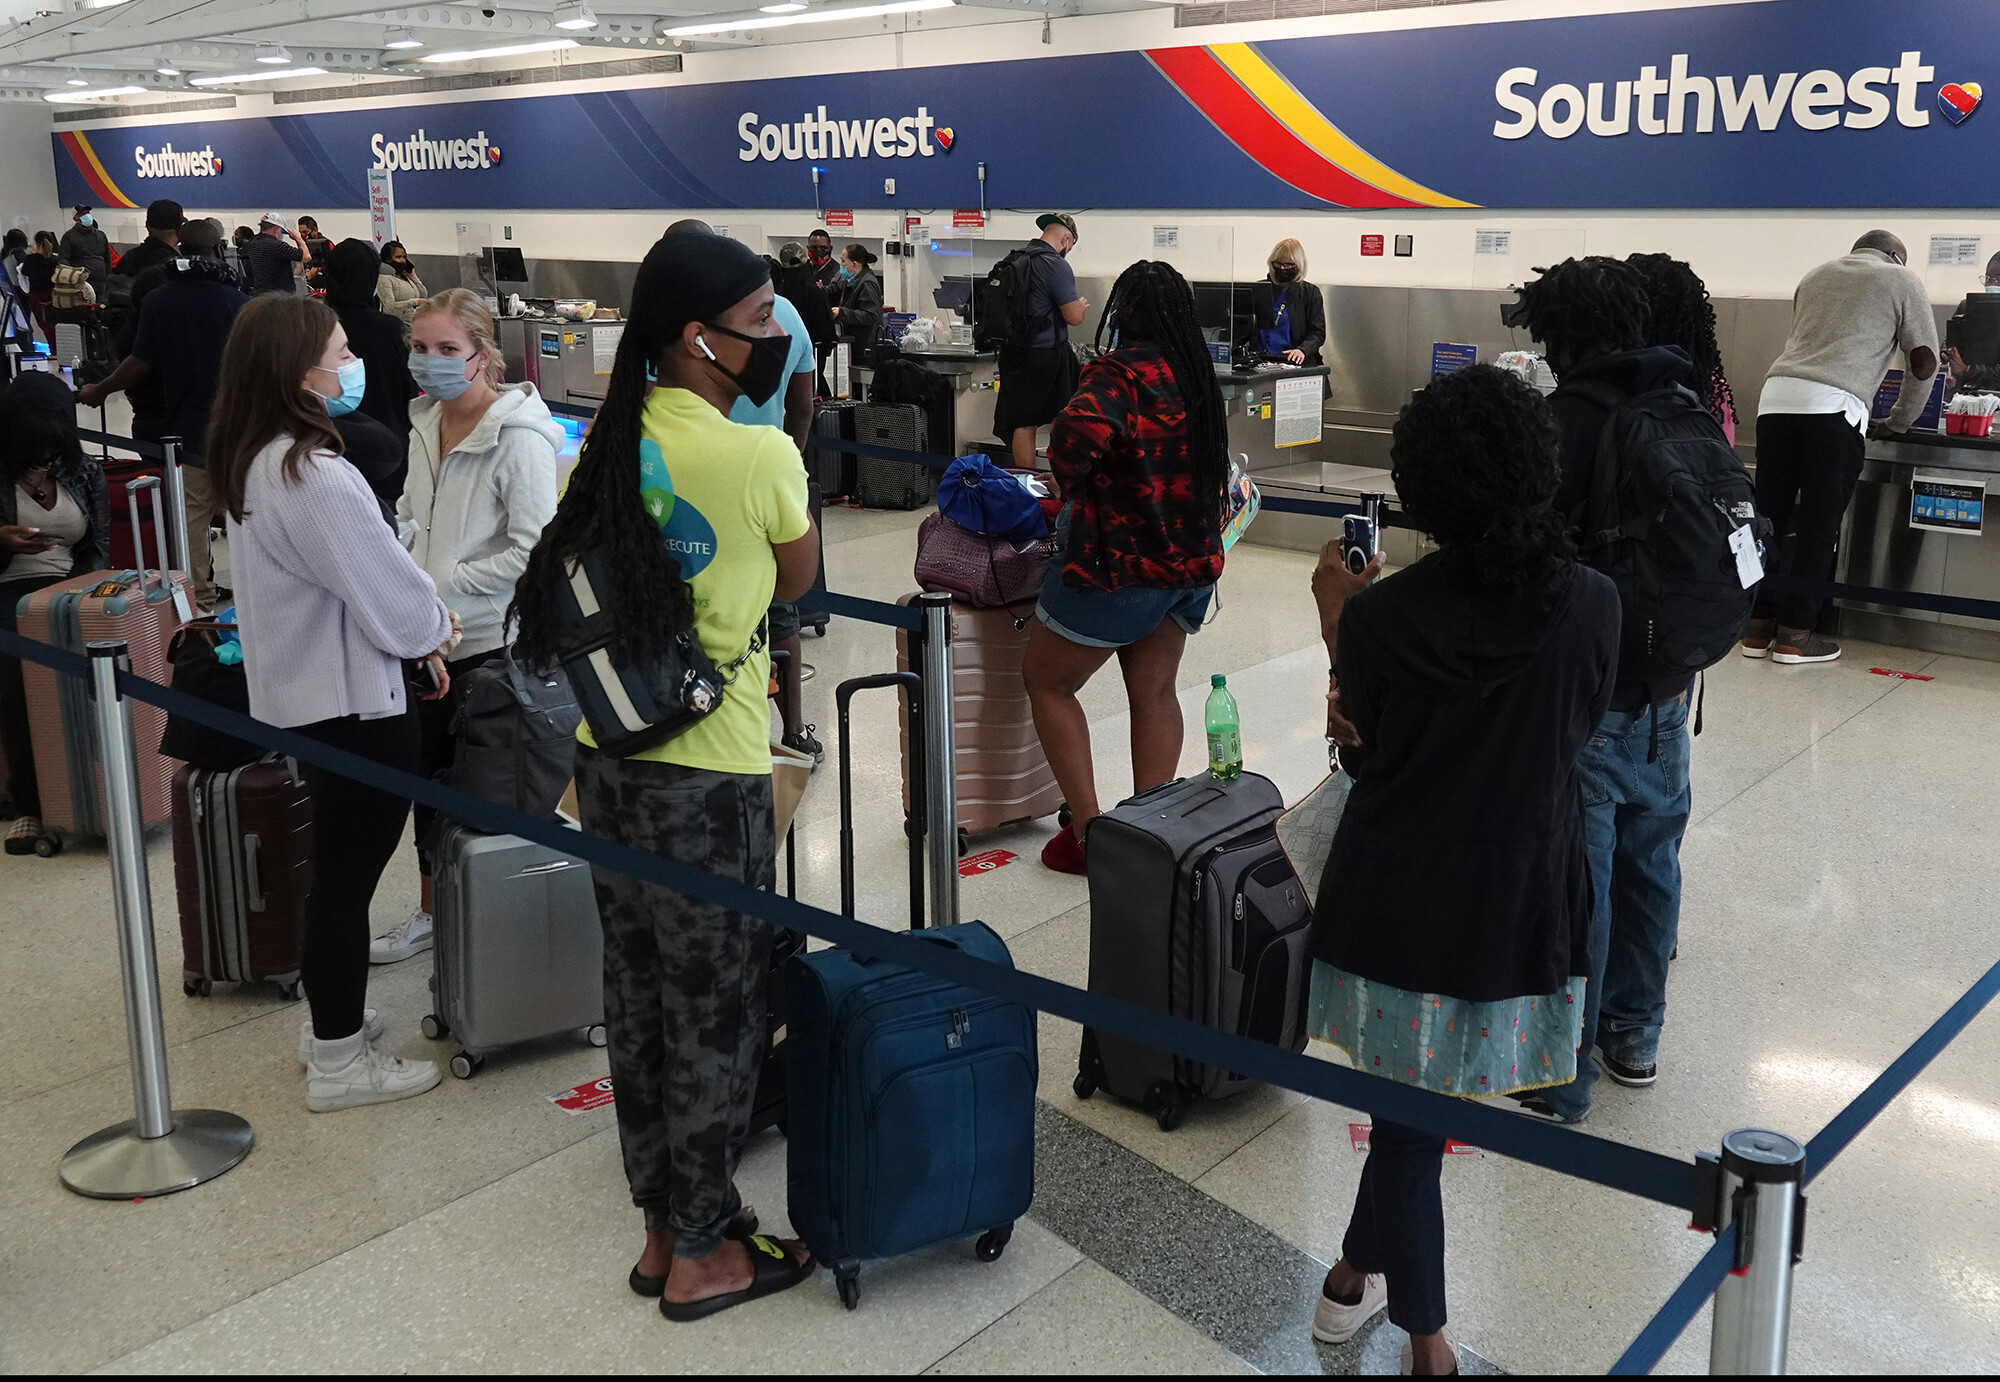 With airline staff at a breaking point, passengers can expect more headaches to come